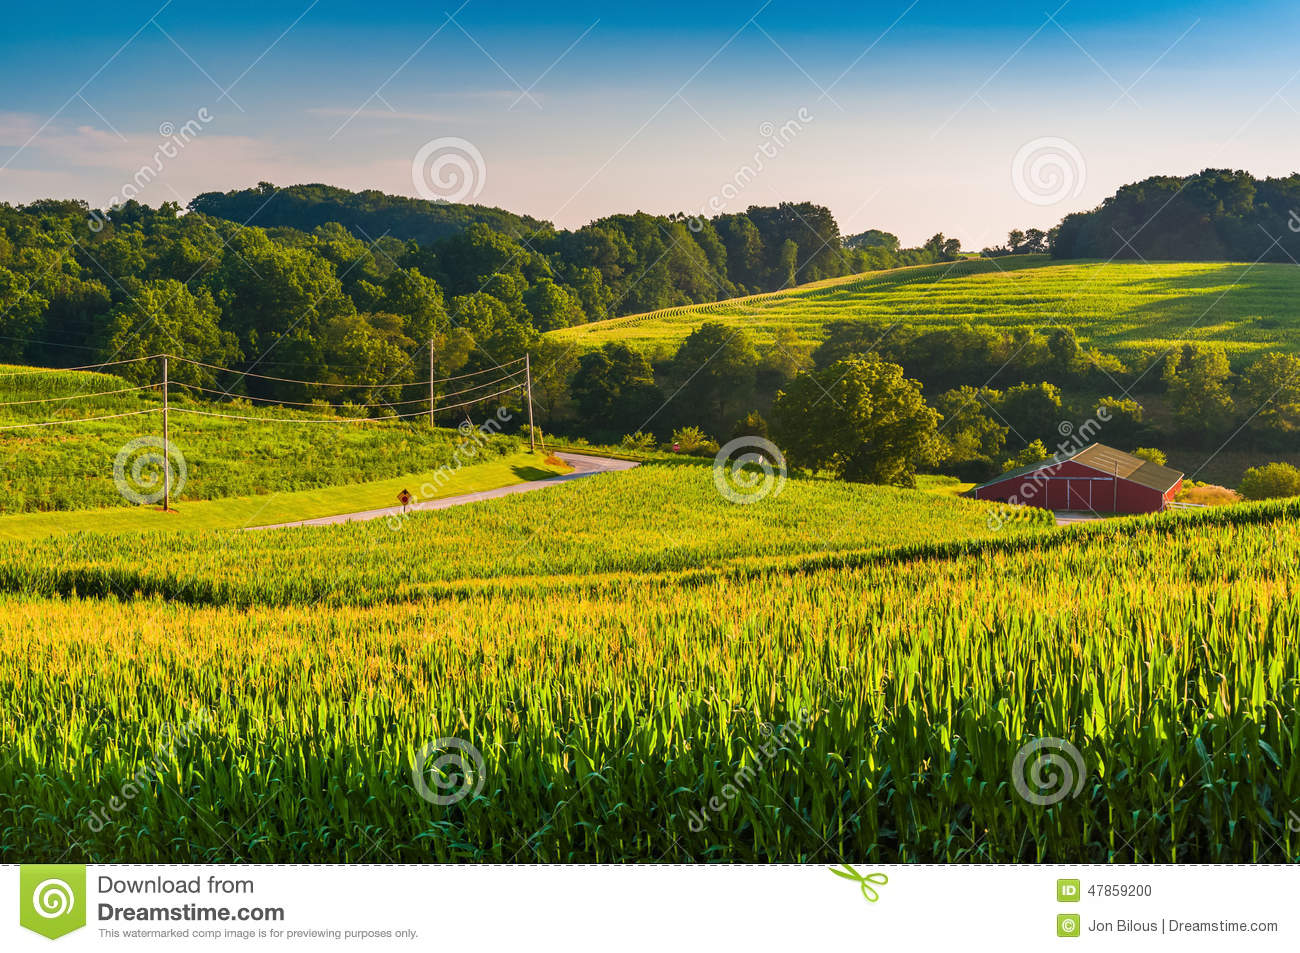 View of cornfields and a barn in rural York County, Pennsylvania